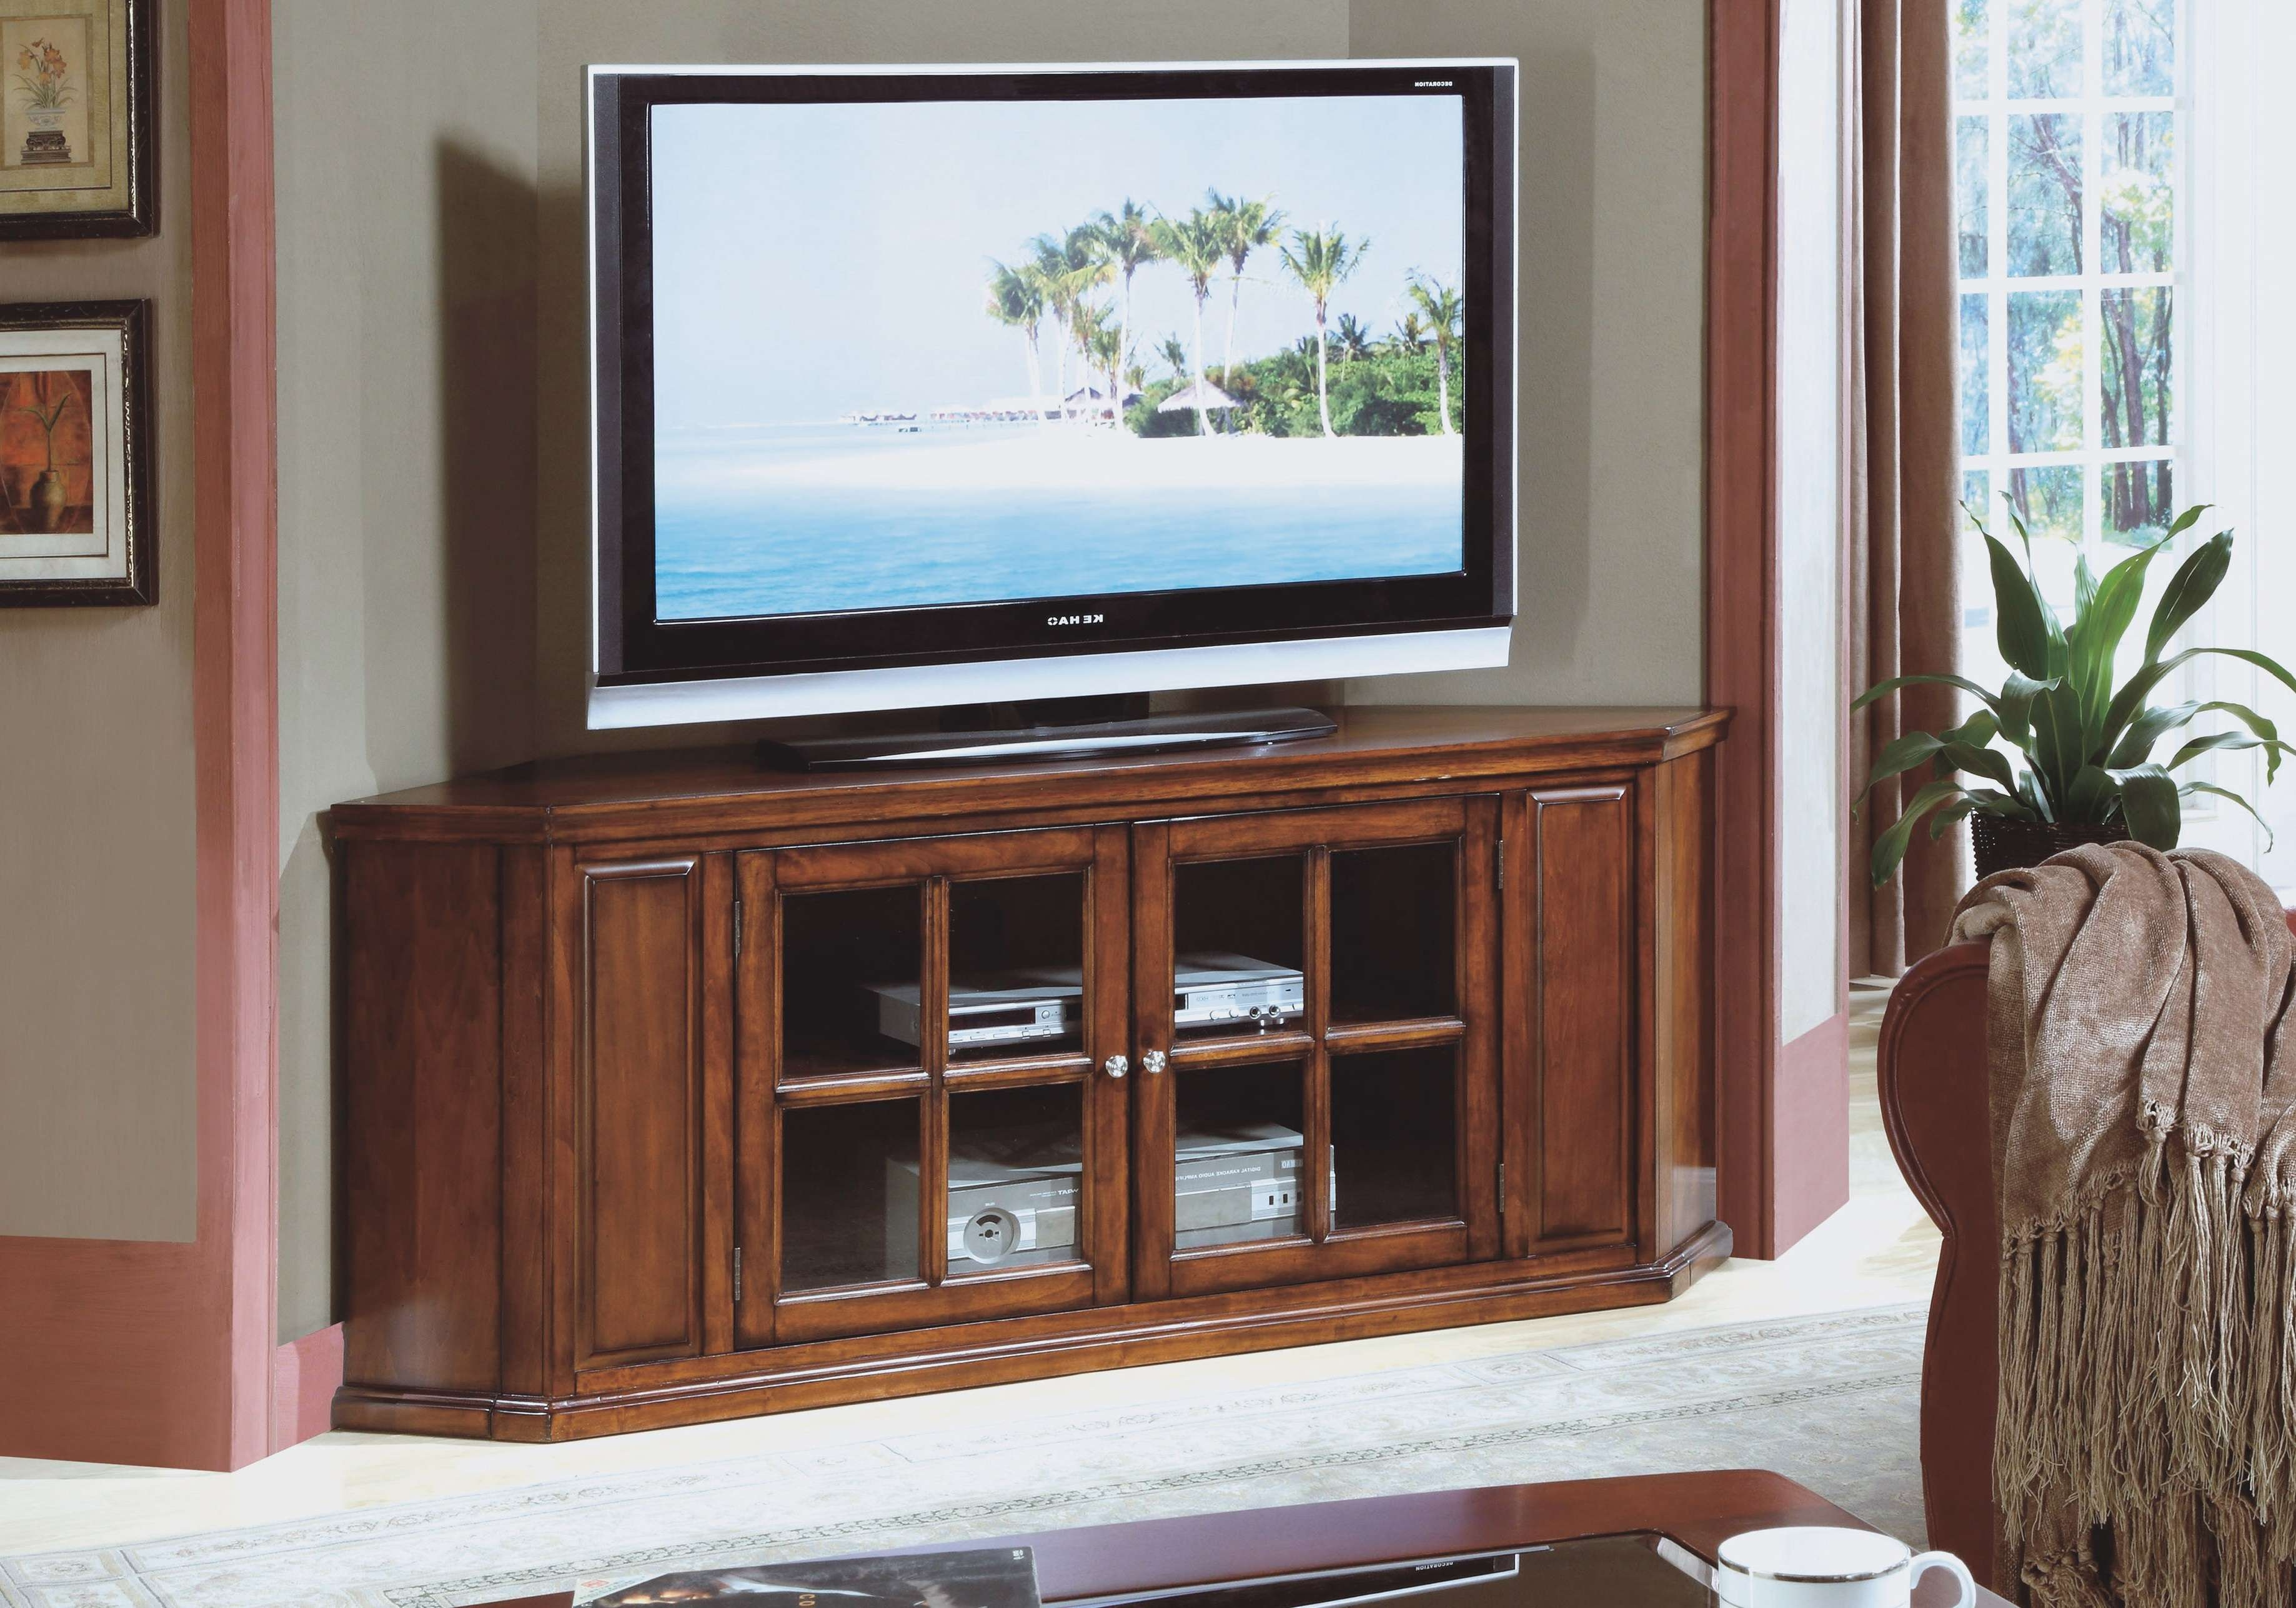 Corner Tv Cabinet For Flat Screens – Office Table With Regard To Corner Tv Cabinets For Flat Screens With Doors (View 5 of 20)